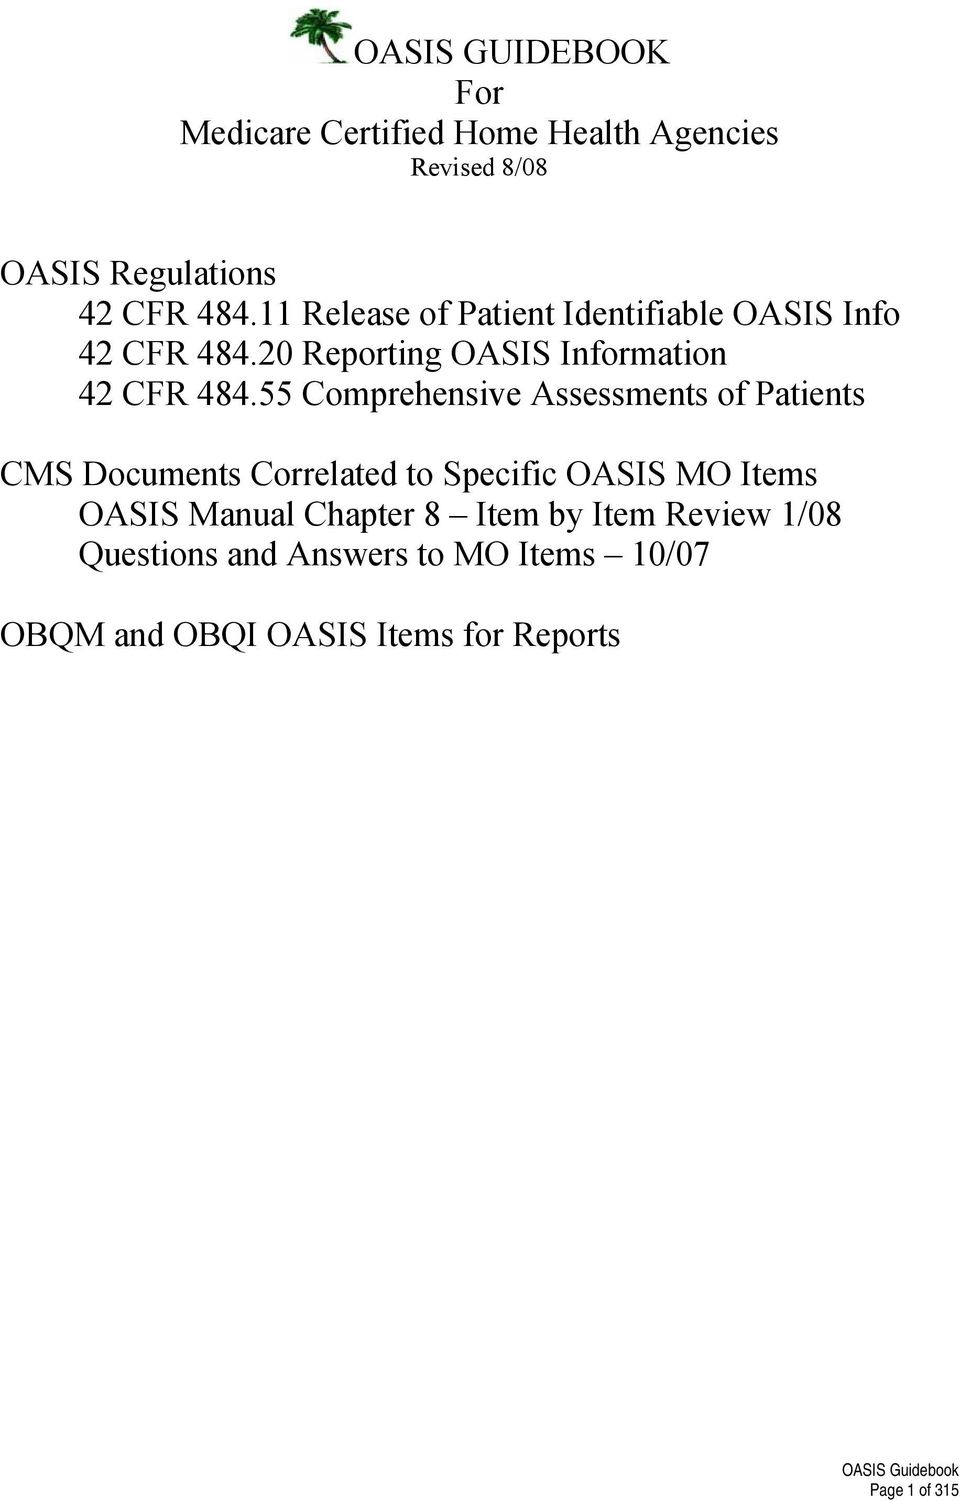 Oasis Guidebook For Medicare Certified Home Health. What Does Procrastinate Mean Drug Rehab Az. Alcohol Withdrawal Assessment. Santa Clara County Family Law. Hotels Near Denver Colorado Convention Center. What To Use To Remove Stains From Clothes. Best Home Warranty Company Cedar Auto Group. What Is It Service Management. Free Online Social Work Practice Exams